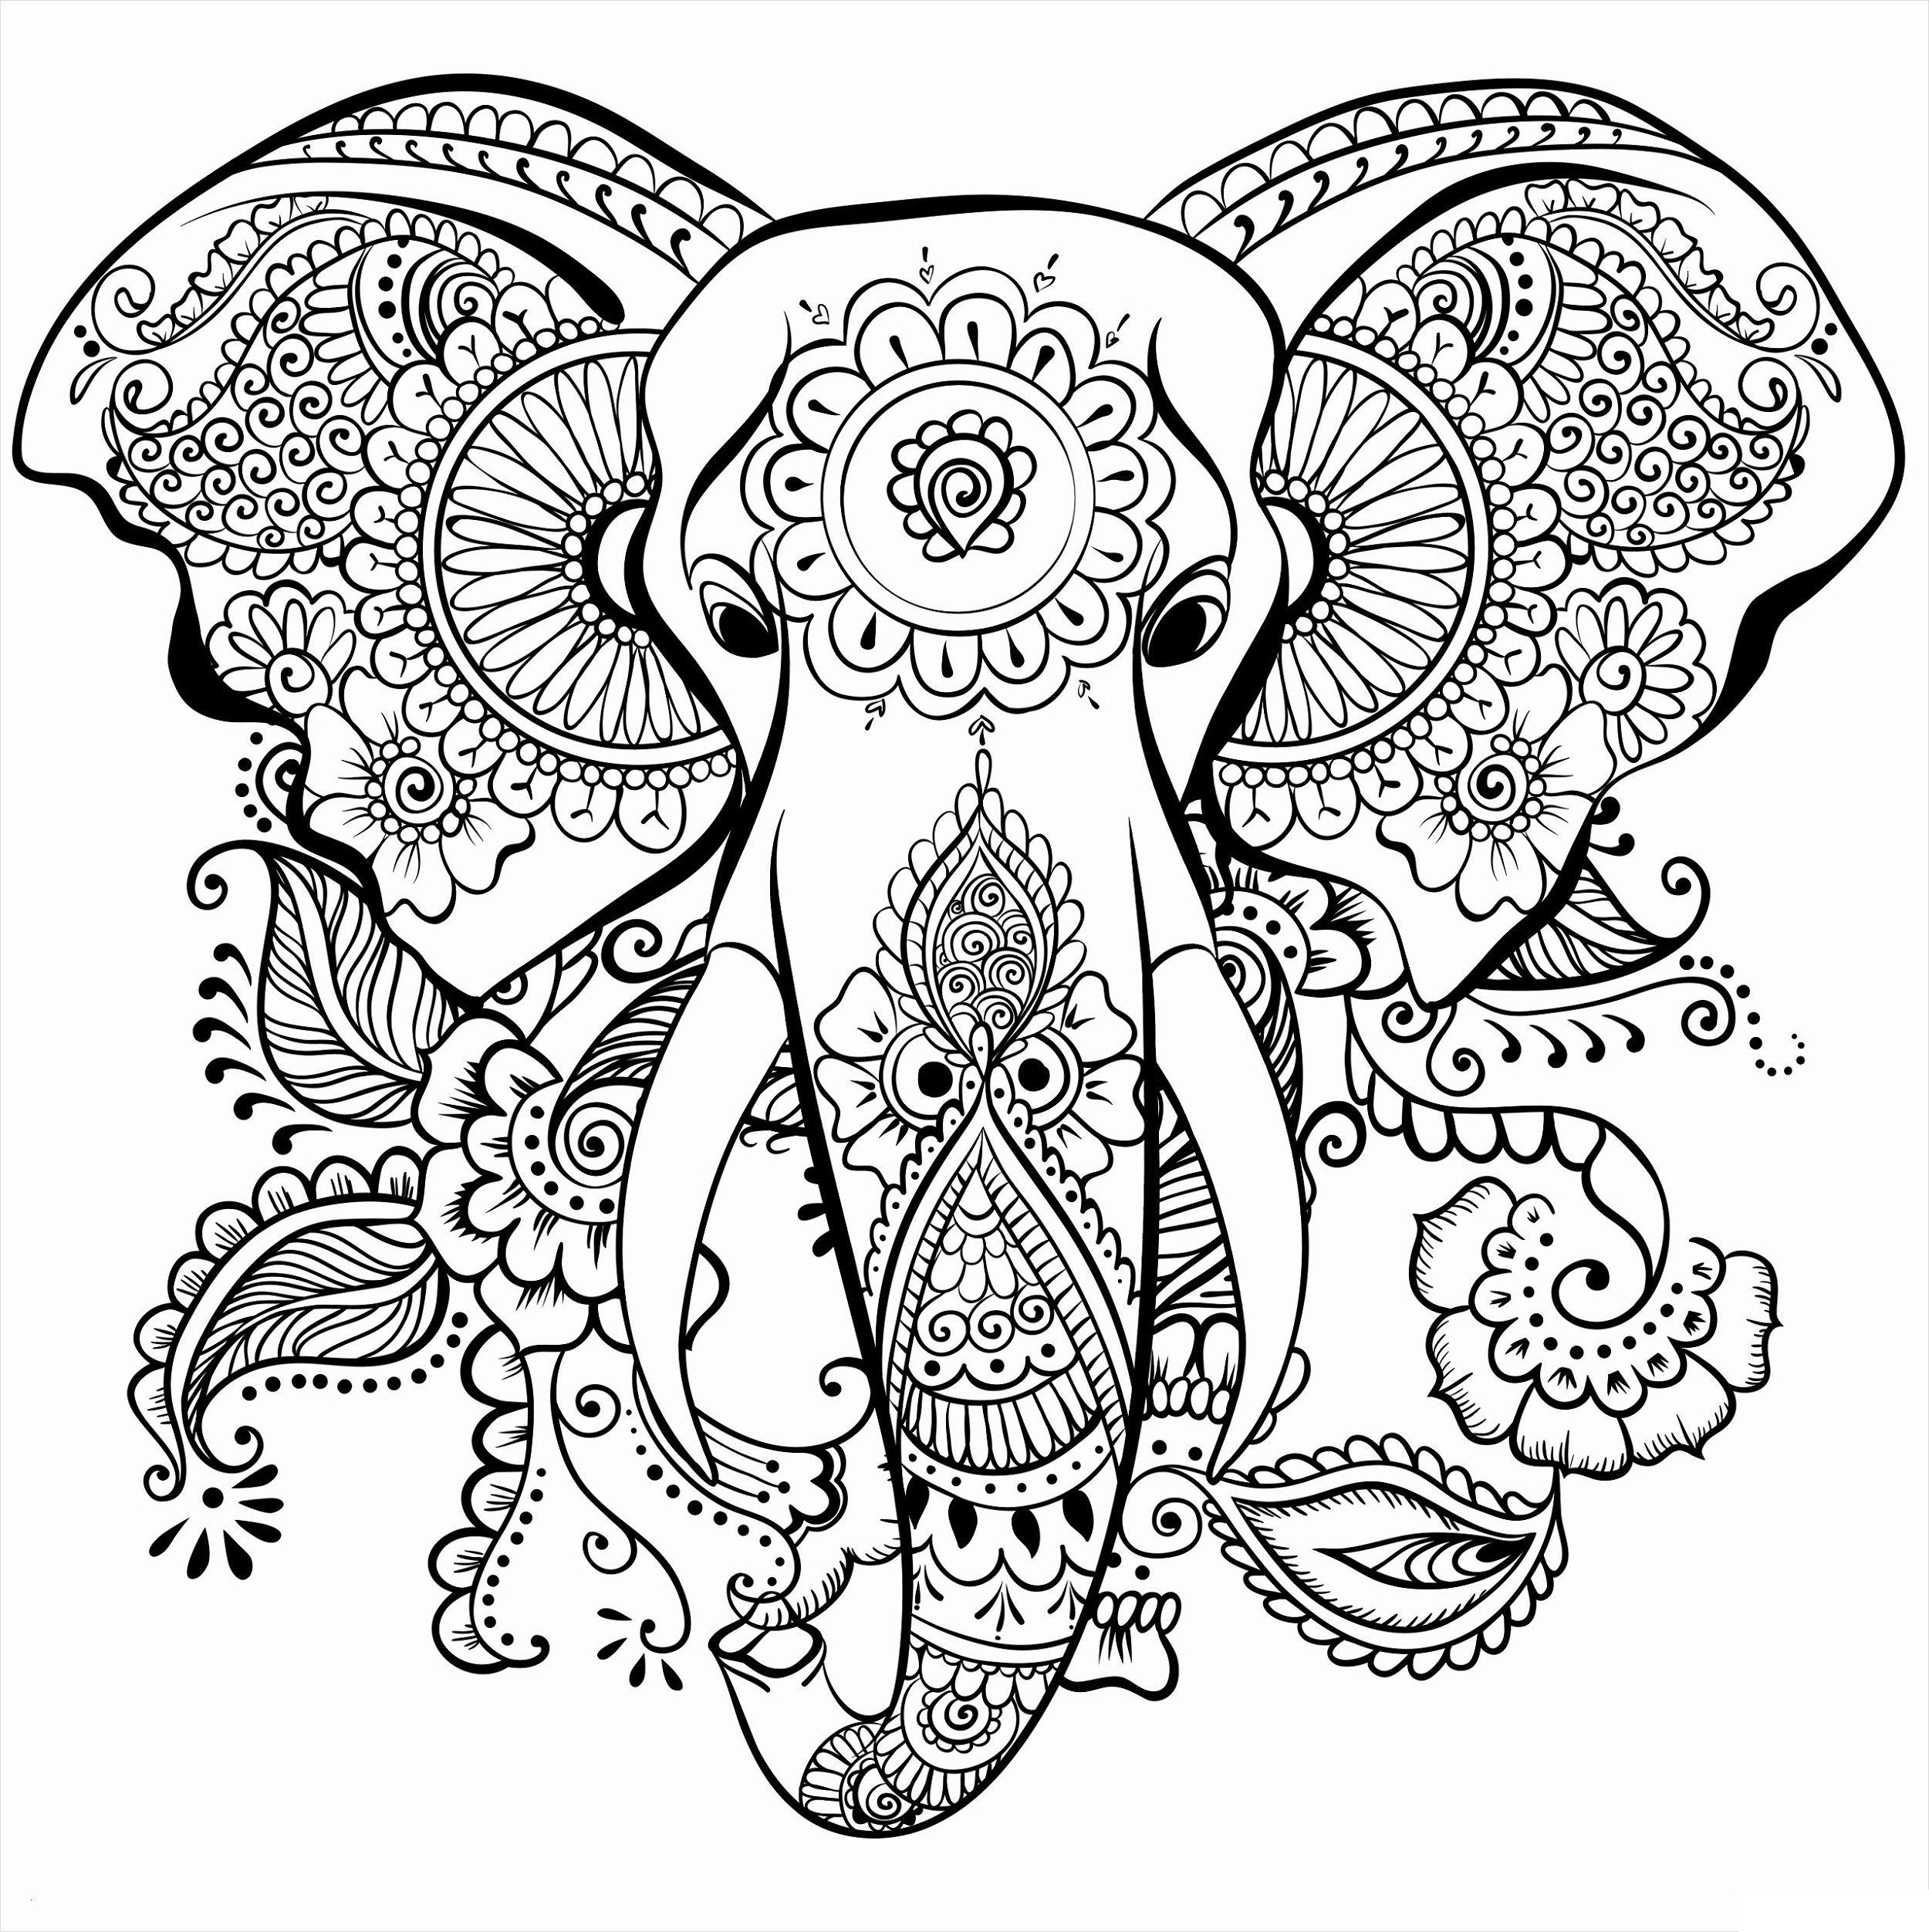 coloring pages elephants adult coloring pages elephant free 101 worksheets coloring pages elephants